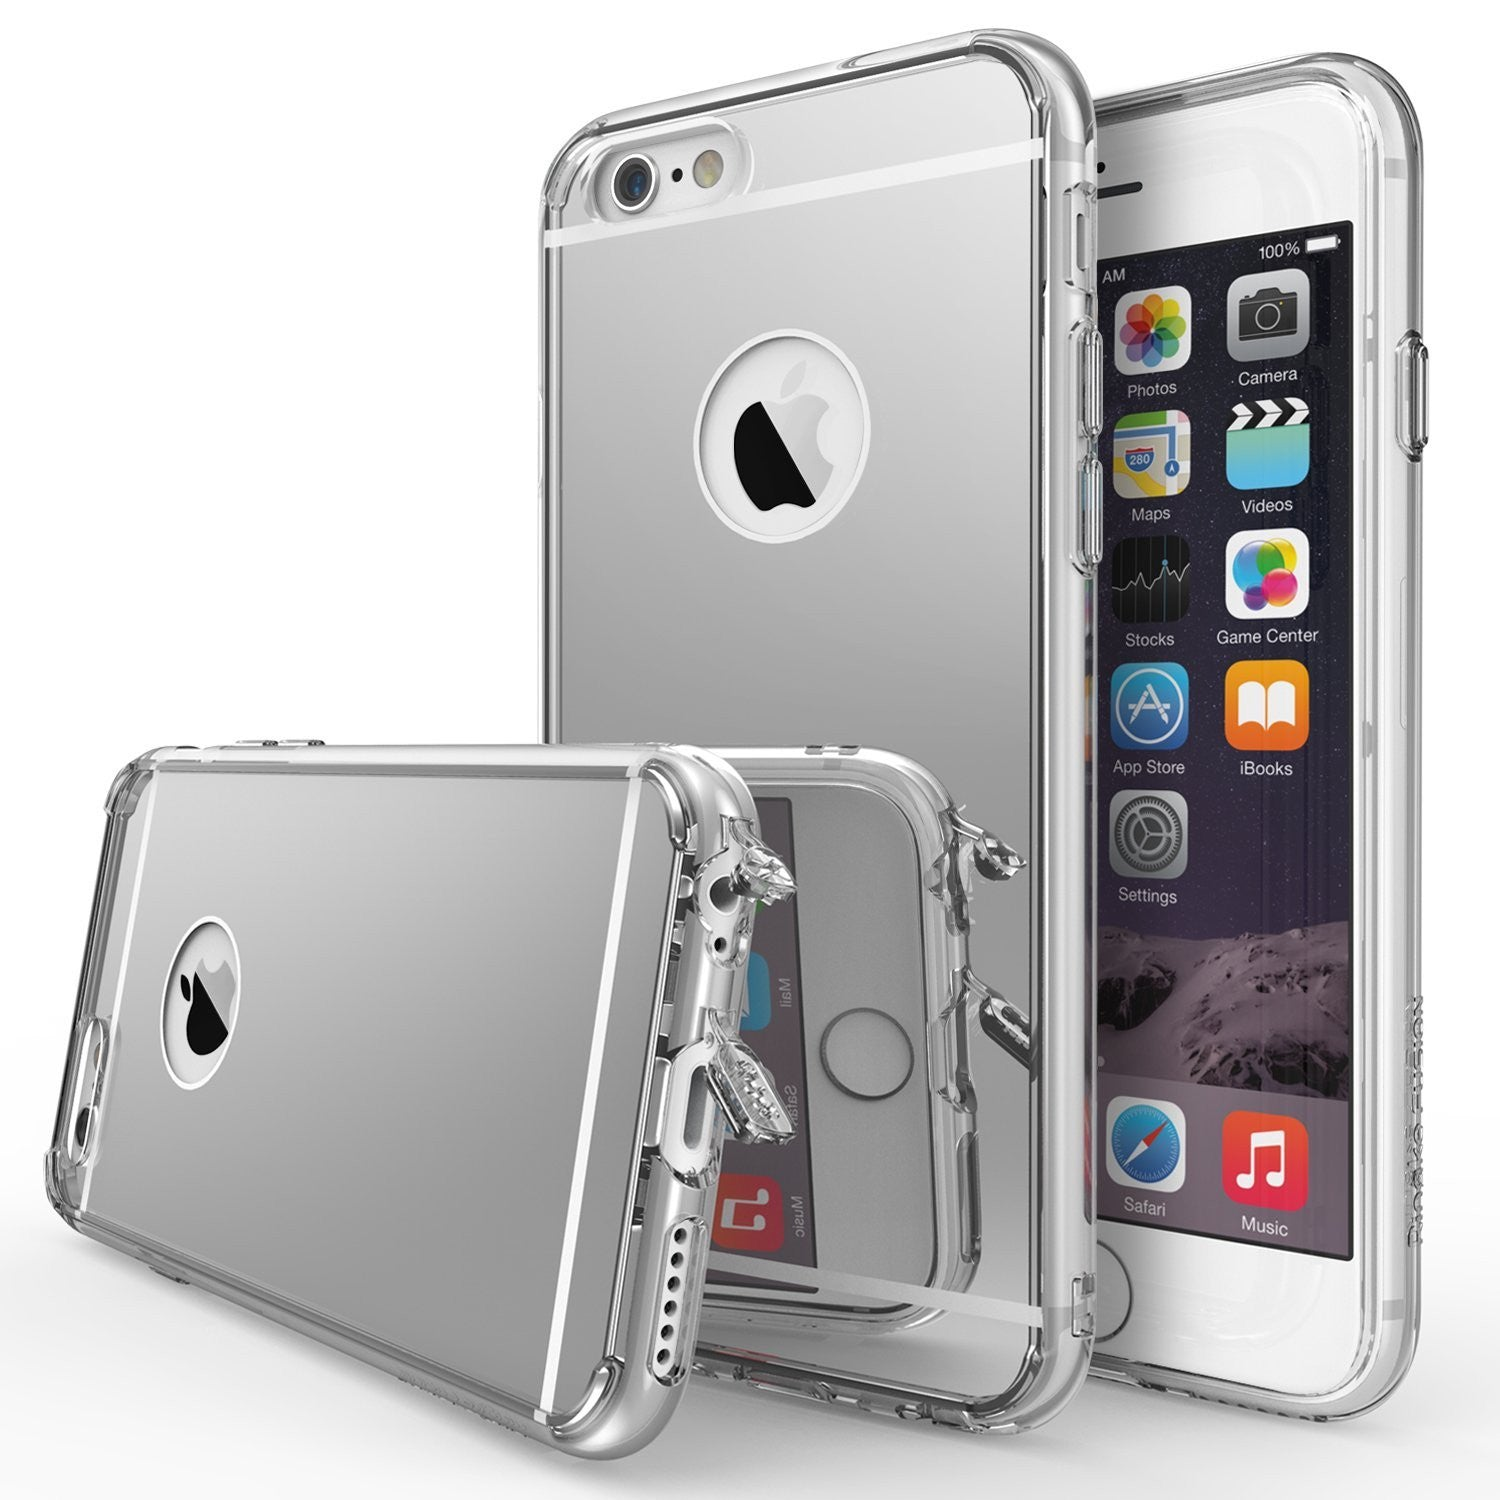 ringke mirror back hard back case cover for iphone 6 plus 6s plus main silver